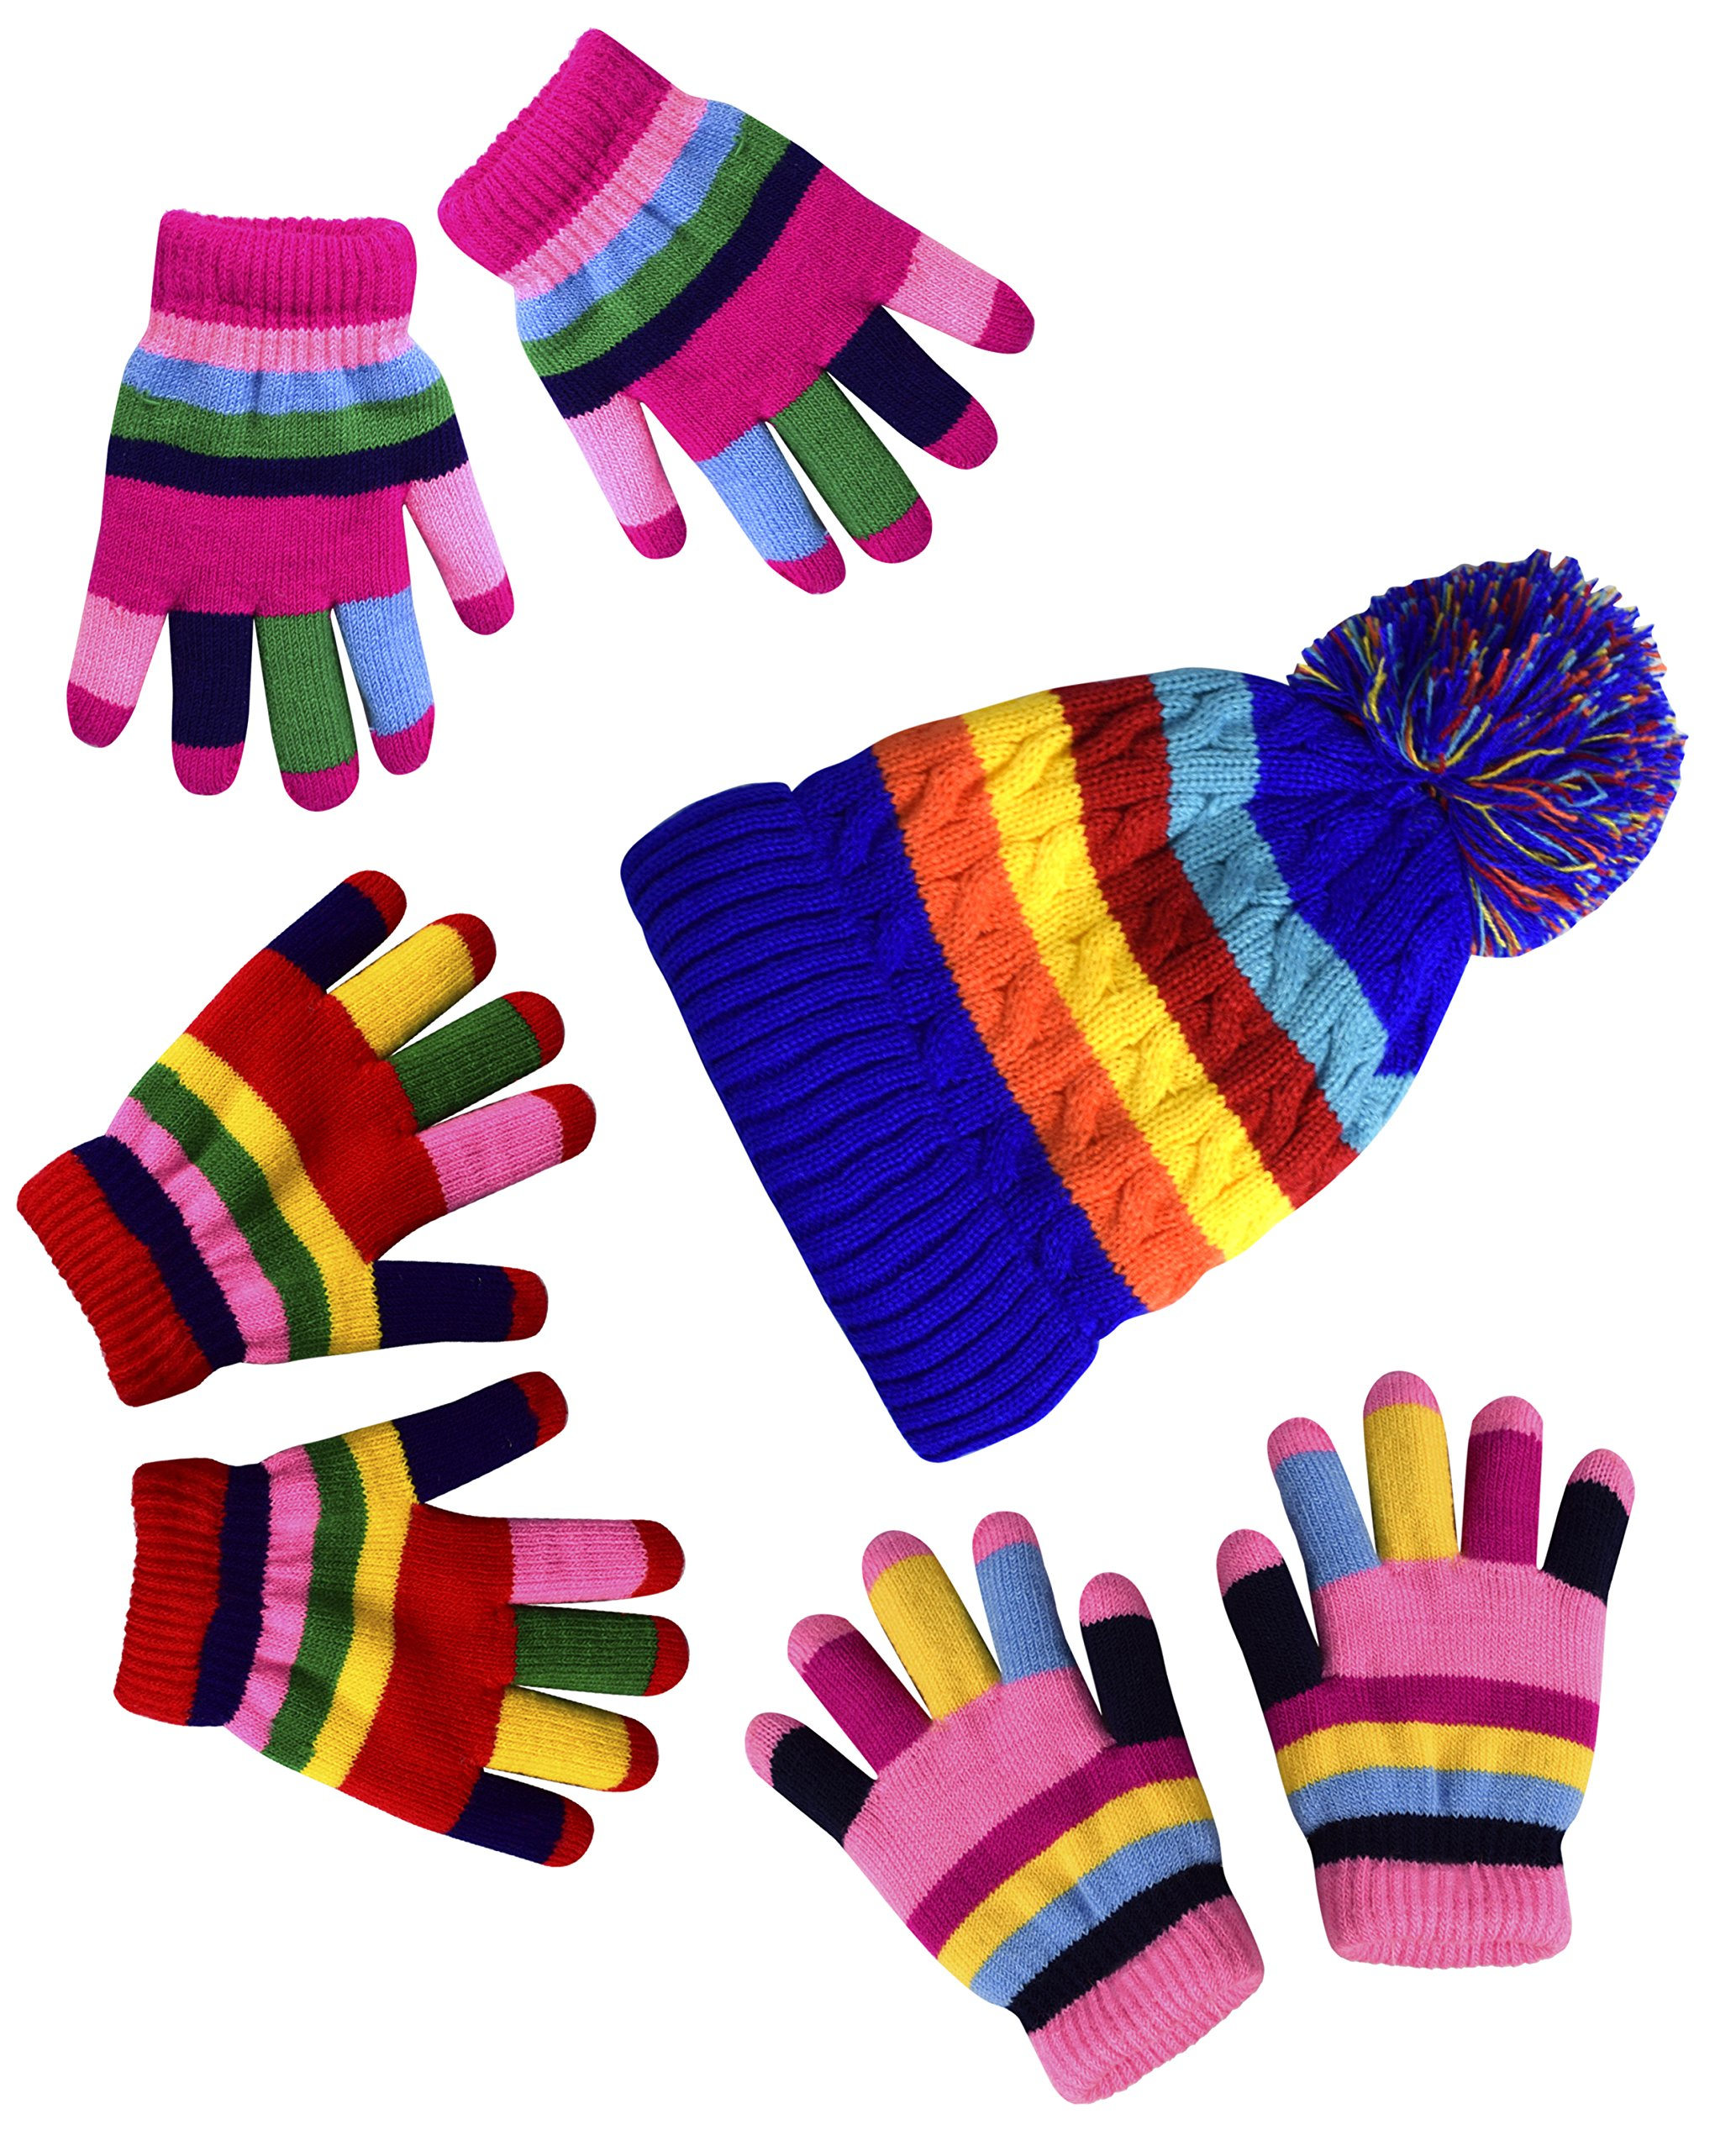 Peach Couture Children's Toddler Warm Double Layered Winter Gloves and Mittens Value packs (One Size, Rainbow Pink Set Toddlers (2 to 4 Years))